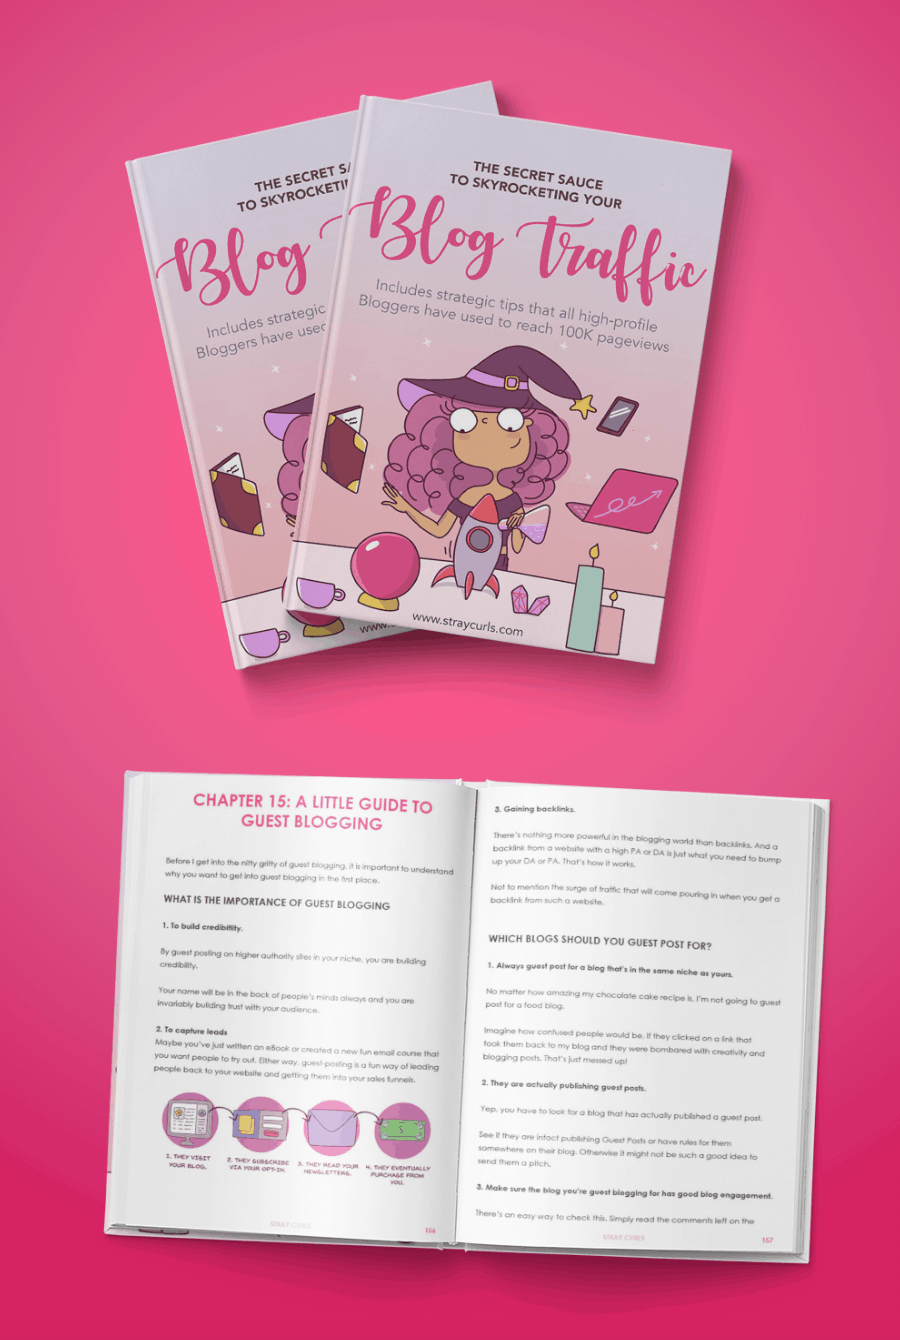 The Secret Sauce to Skyrocketing your blog traffic will help you understand how to get your blogging fundamentals right so that you can boost your blog traffic immediately!